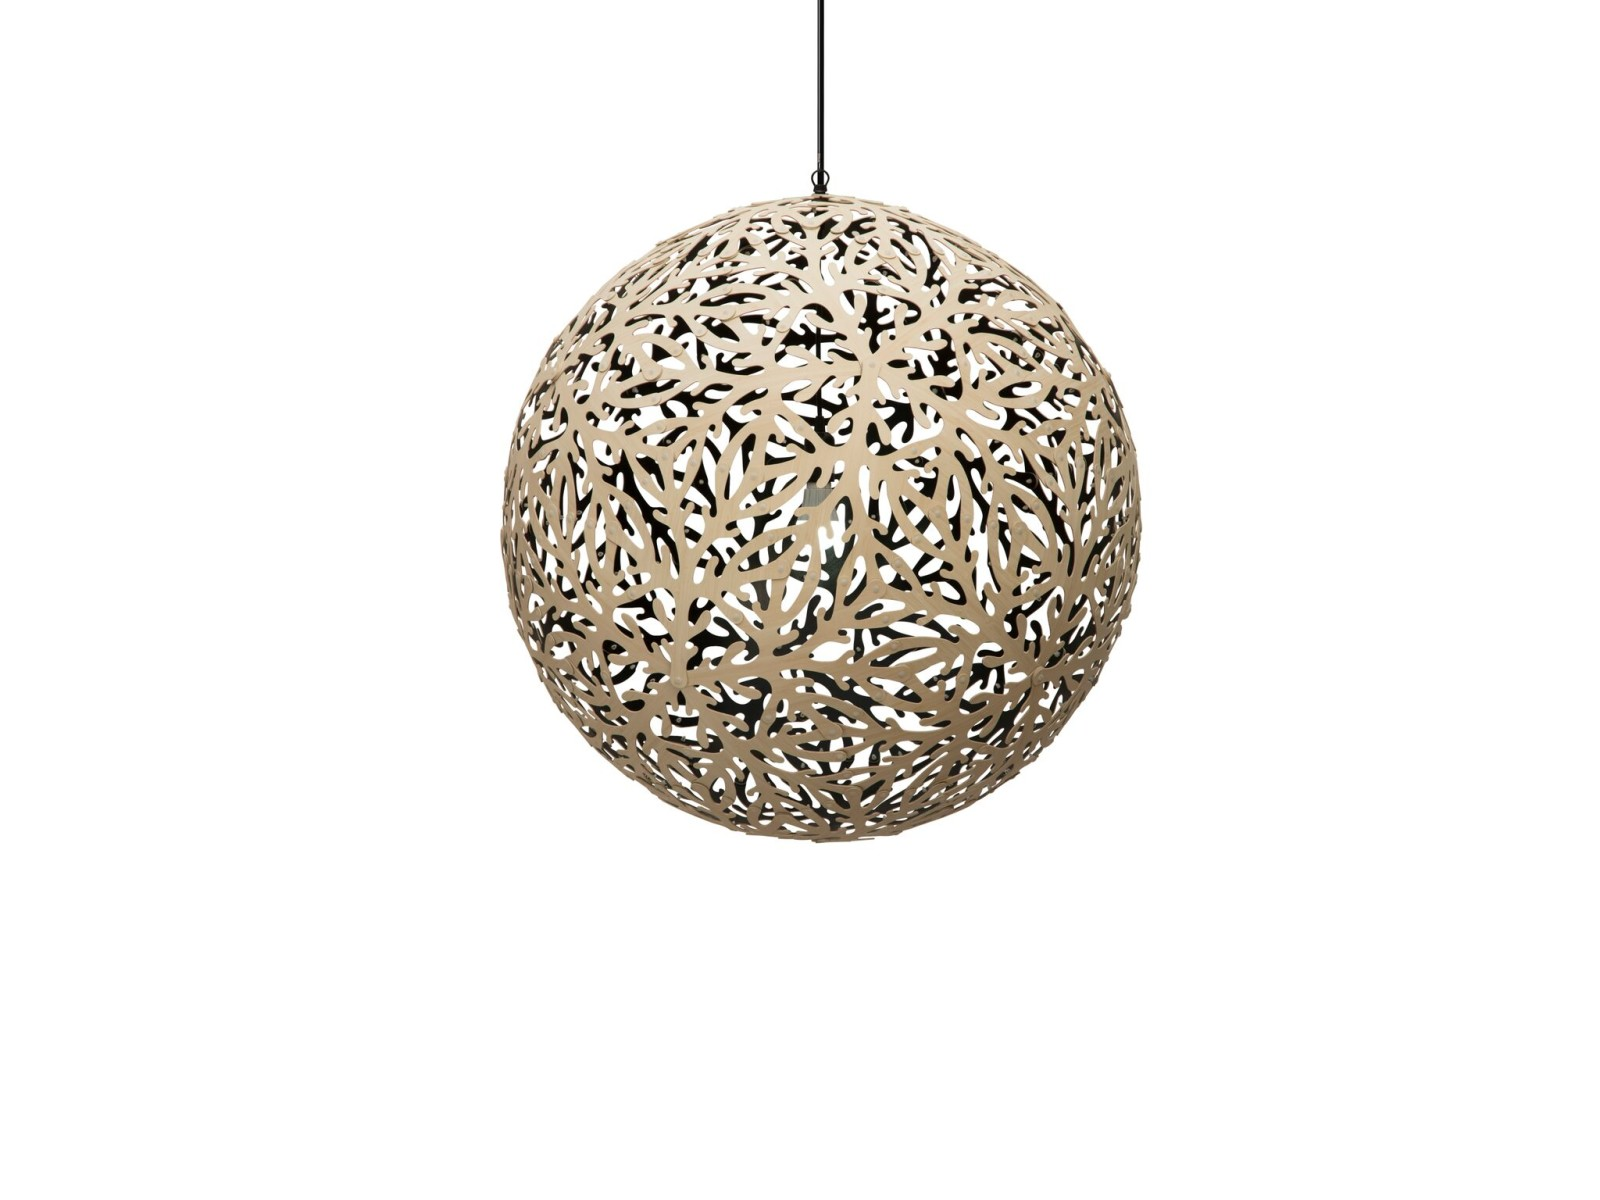 Sola Pendant Light Black 1 Inside, Small